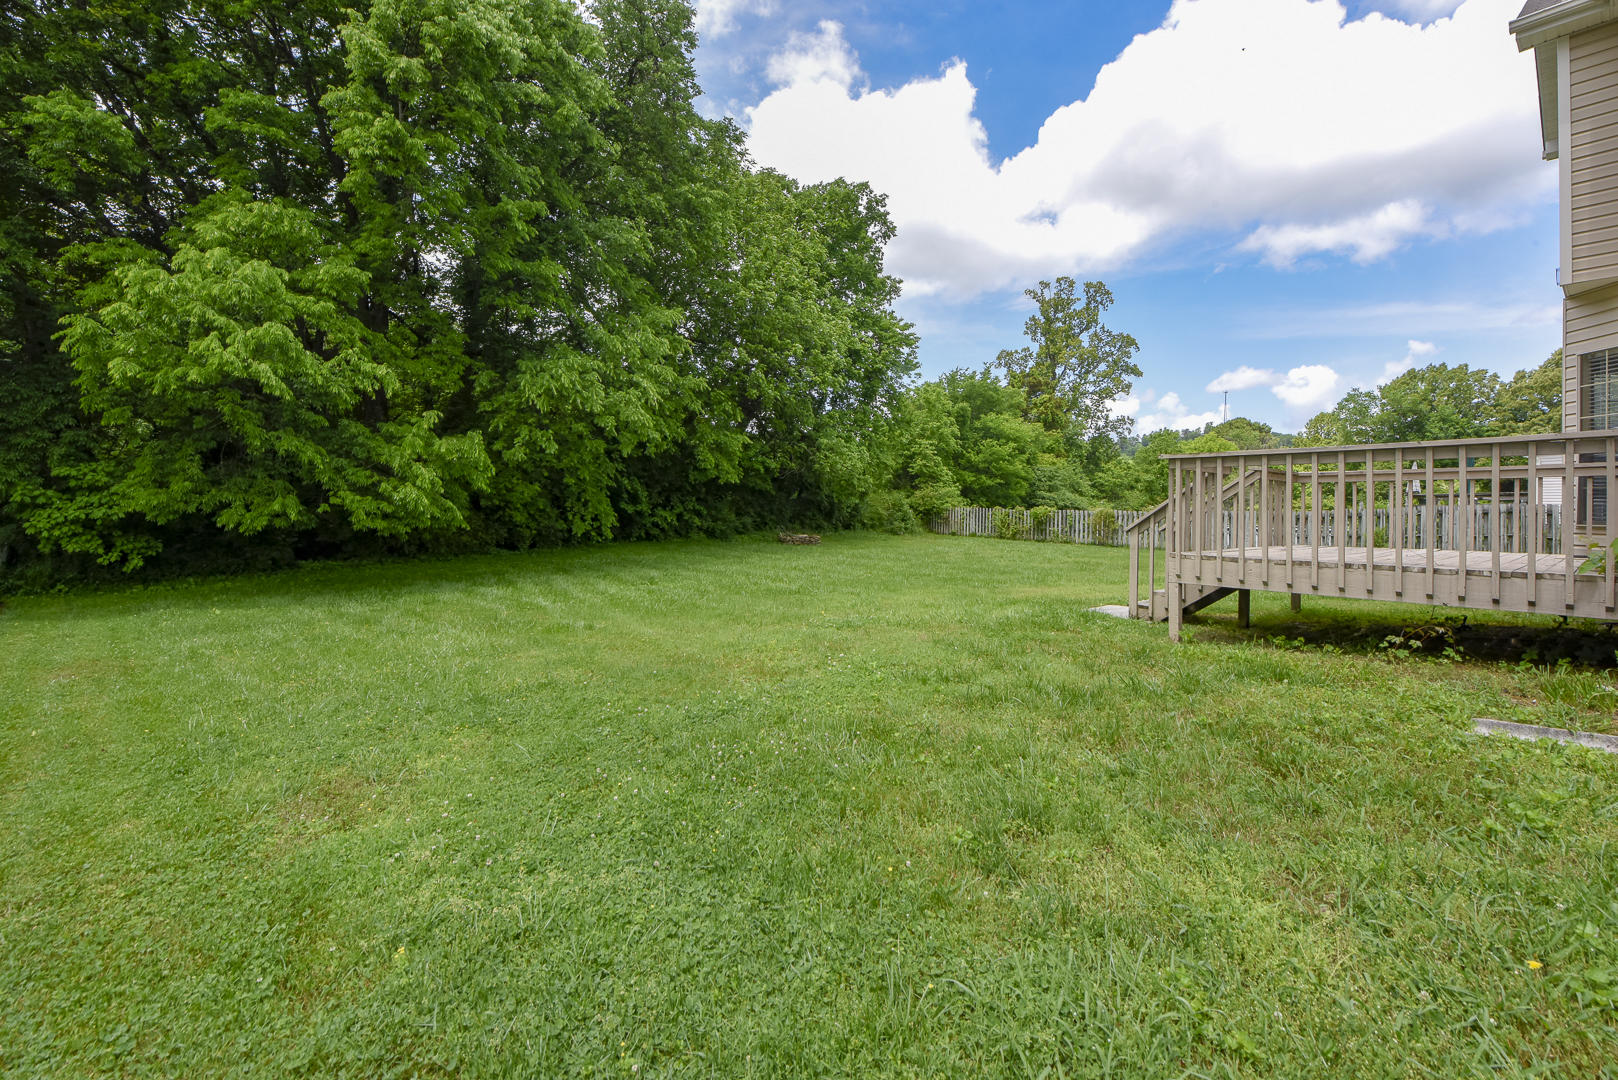 742 Whitesburg Drive, Knoxville, Tennessee 37918, 4 Bedrooms Bedrooms, ,2 BathroomsBathrooms,Single Family,For Sale,Whitesburg,1080423